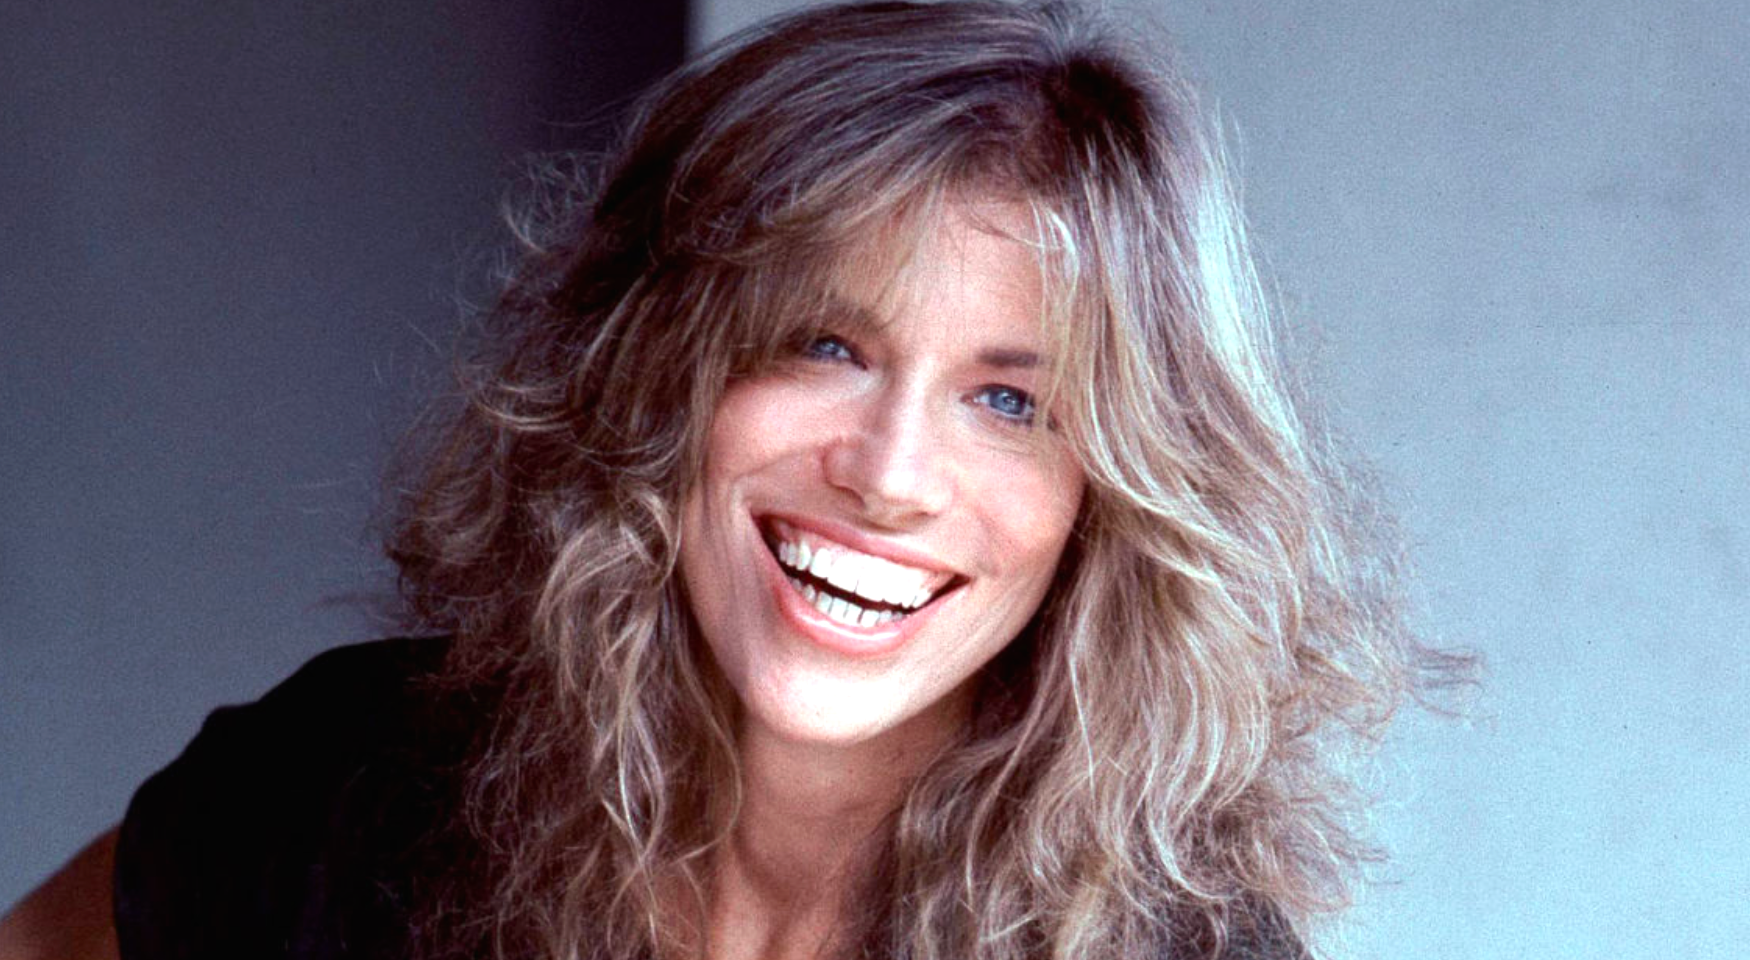 Nothing Compares 2 U, carly simon, Music